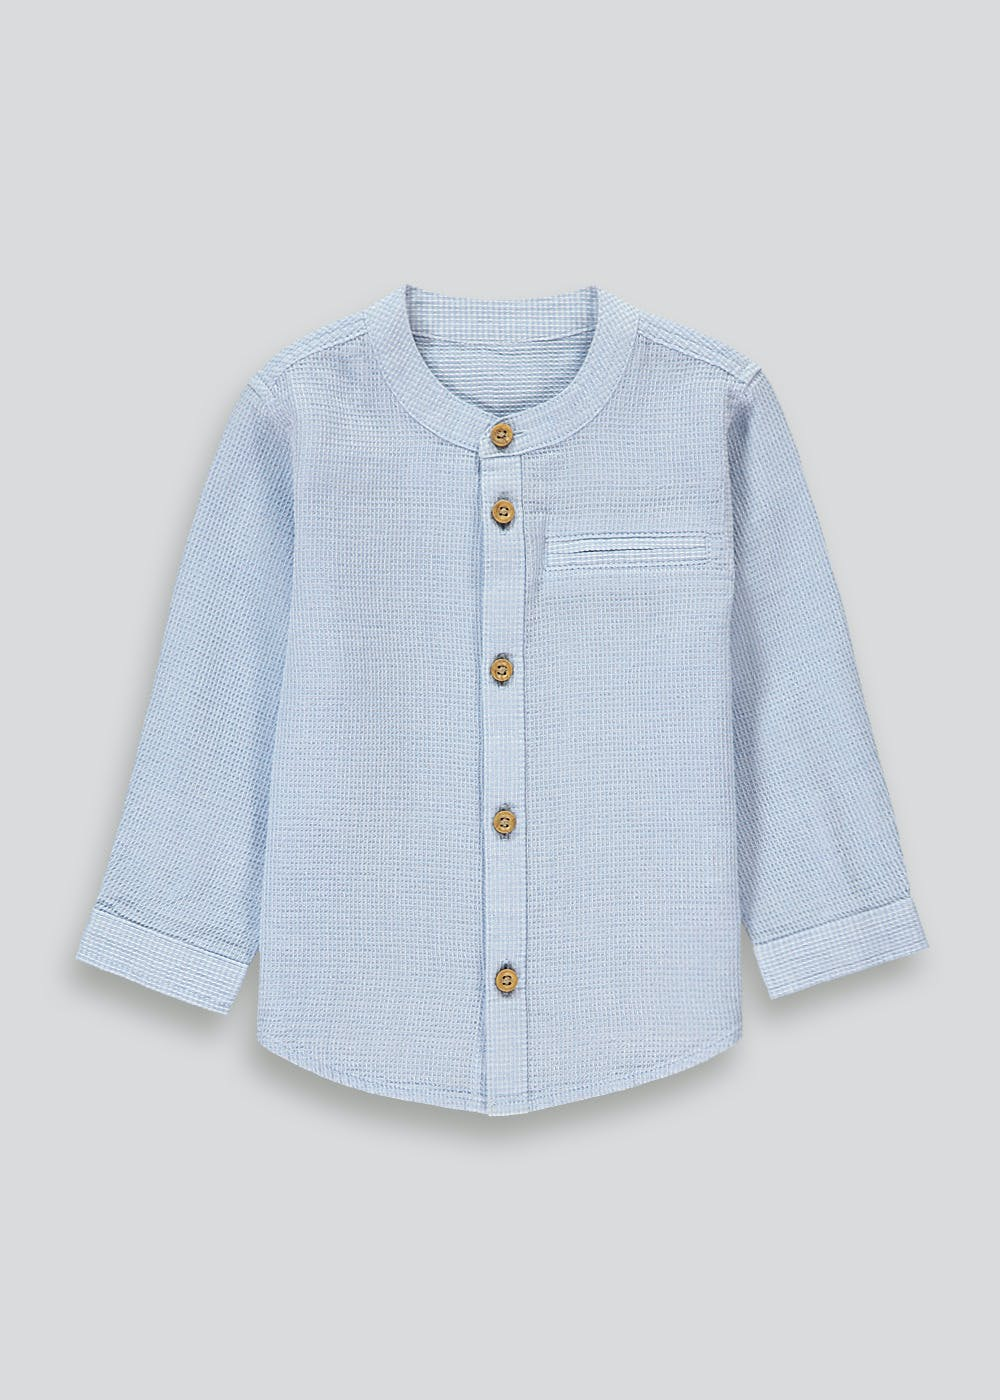 Blue henley collar shirt